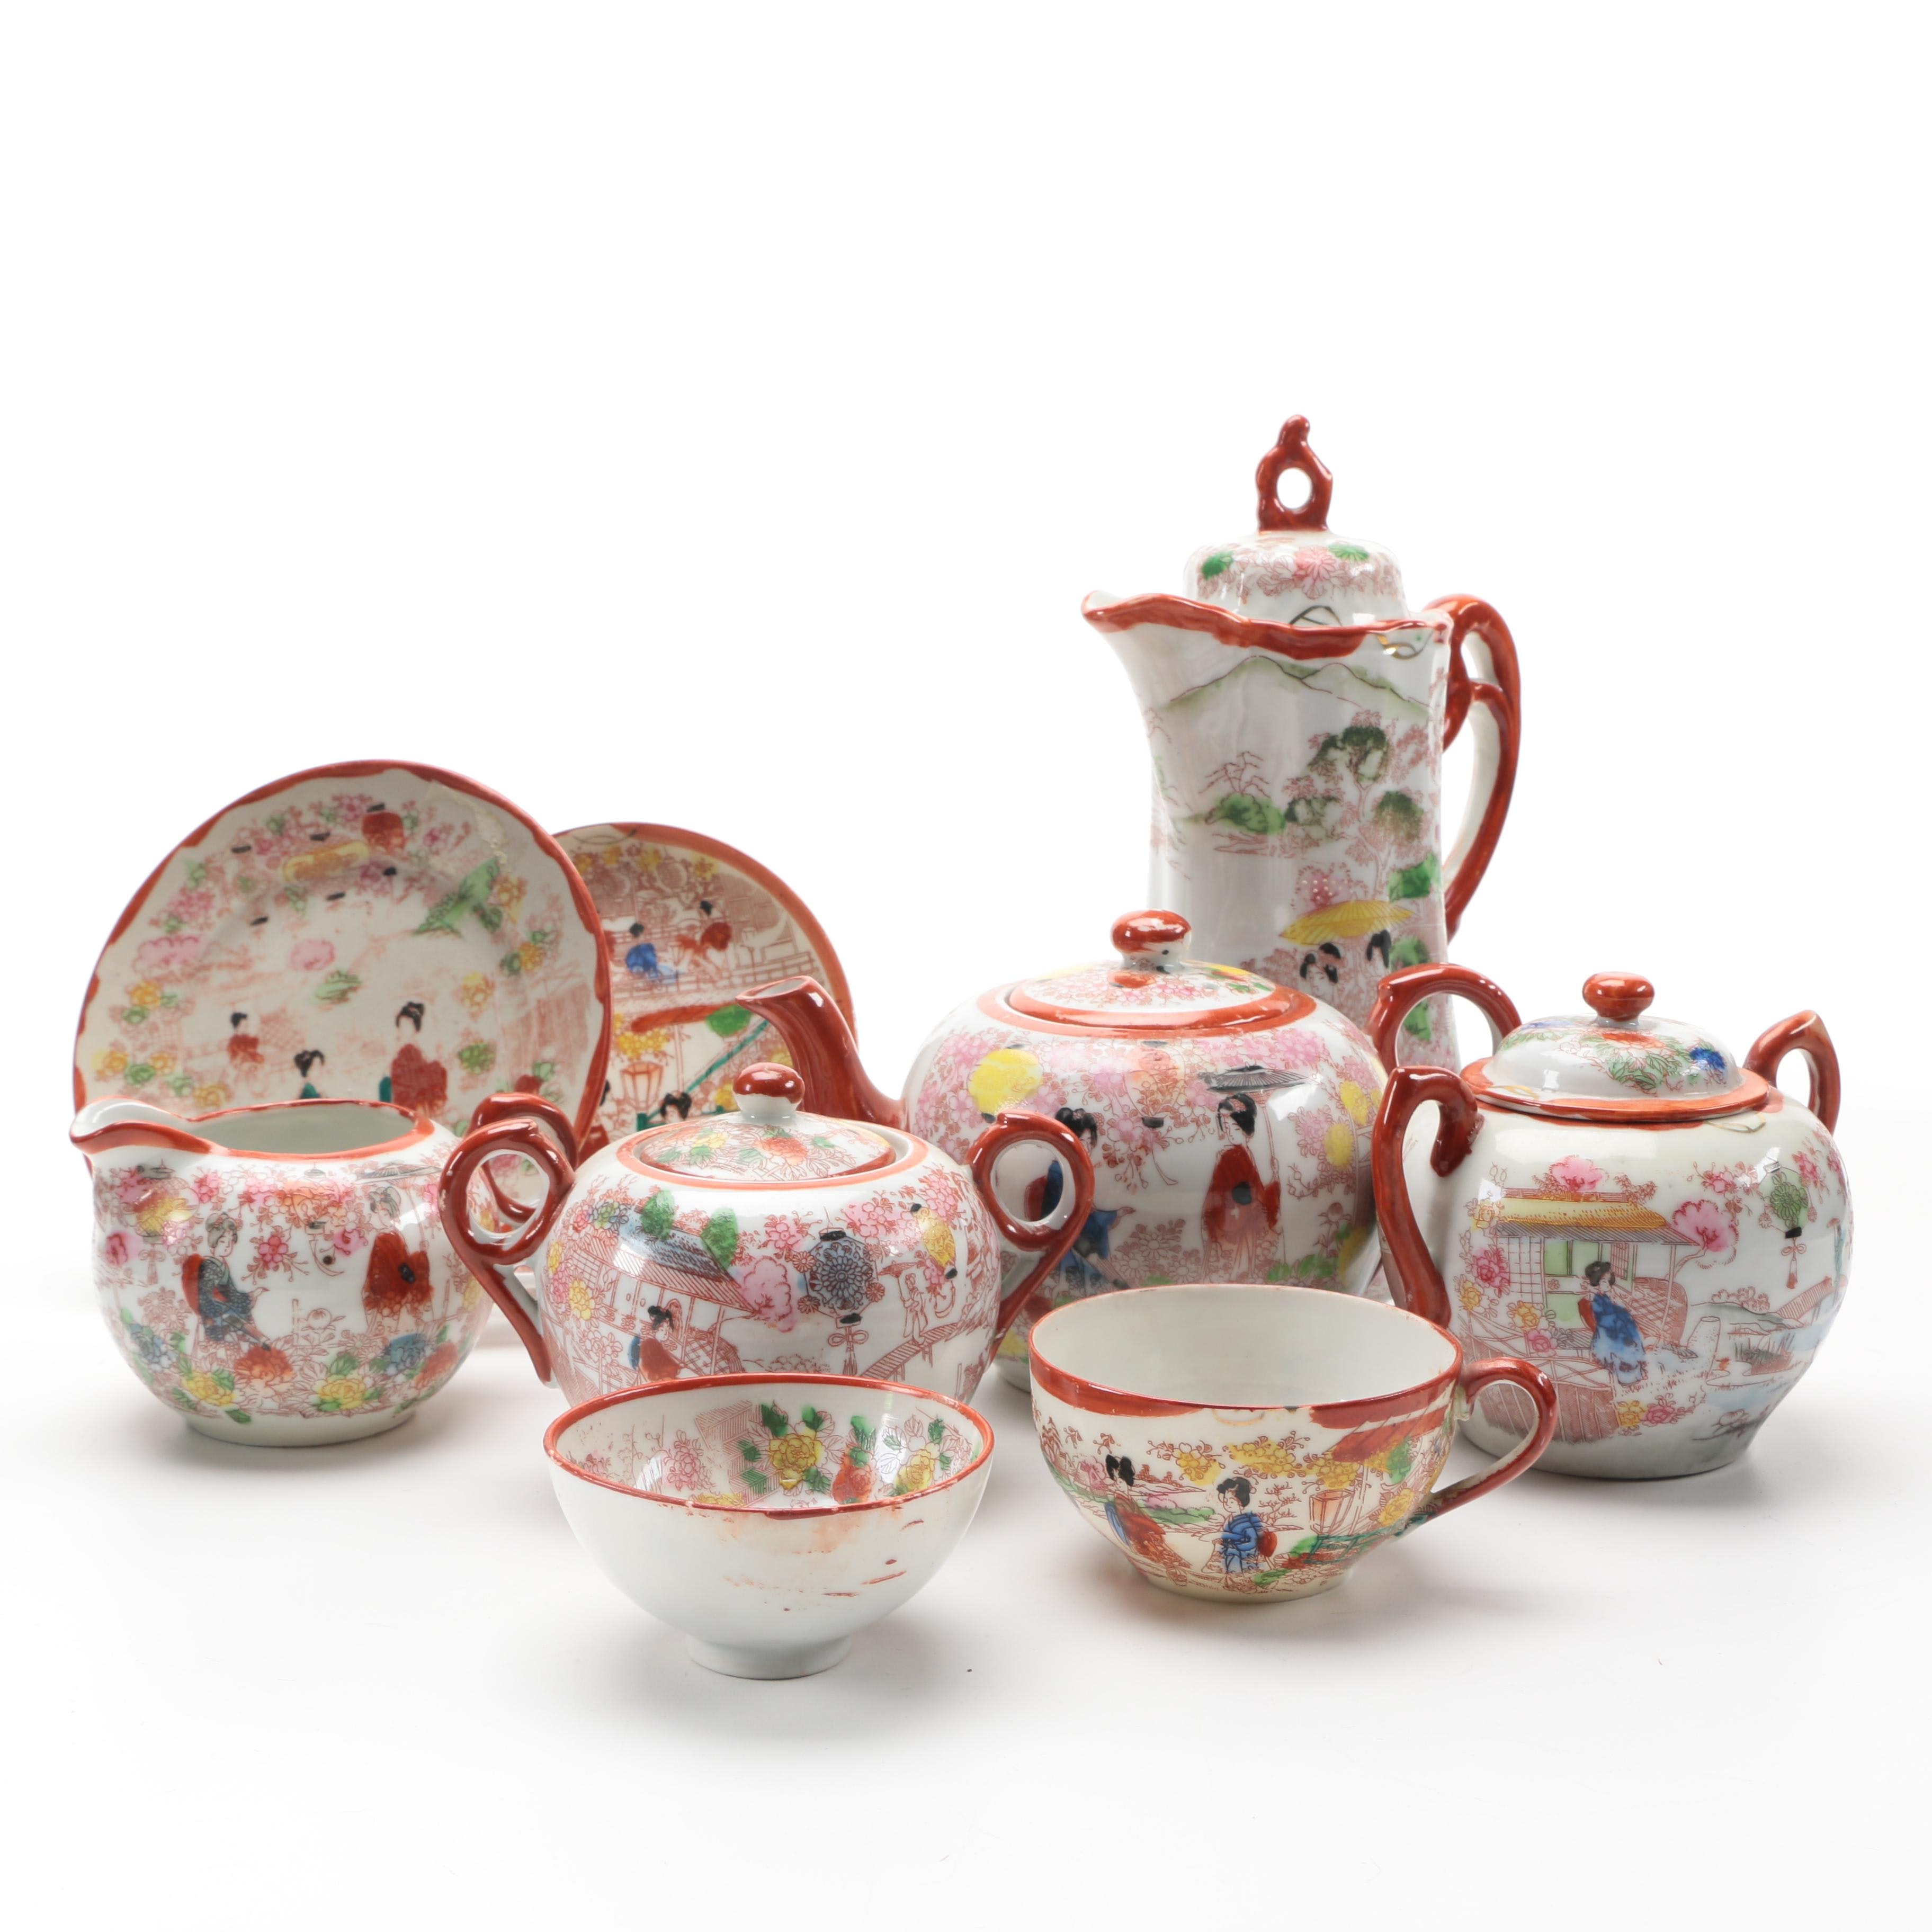 Hand Painted Red and White Porcelain Japanese Tea Set